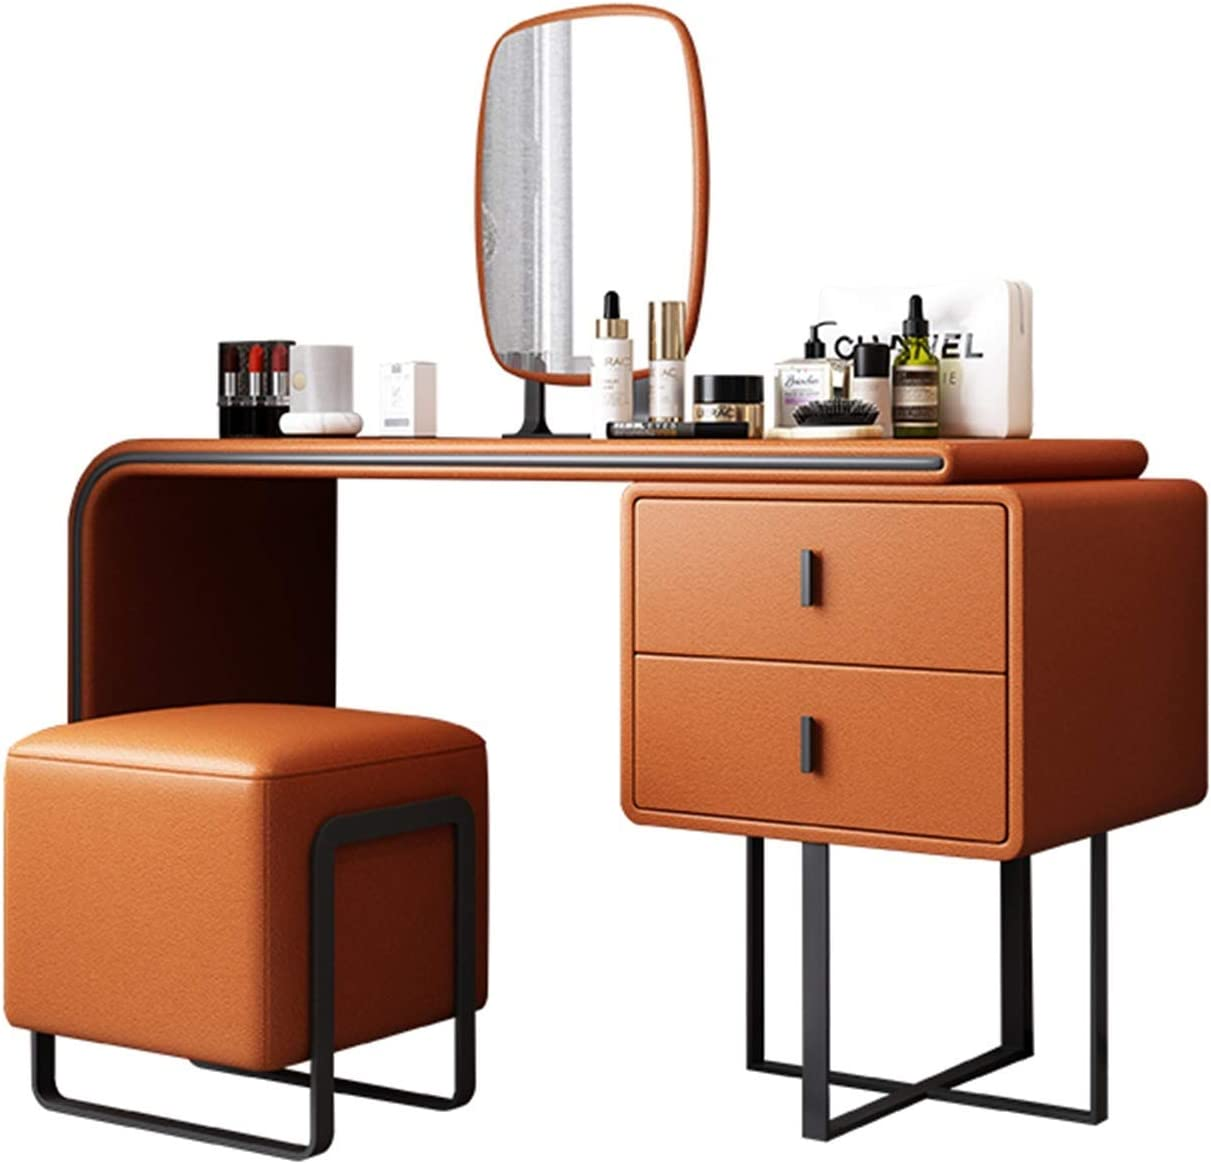 LJJSMG Vanity Benches Makeup Desk Cushioned 1 year warranty Stool with 2 Drawers Large-scale sale